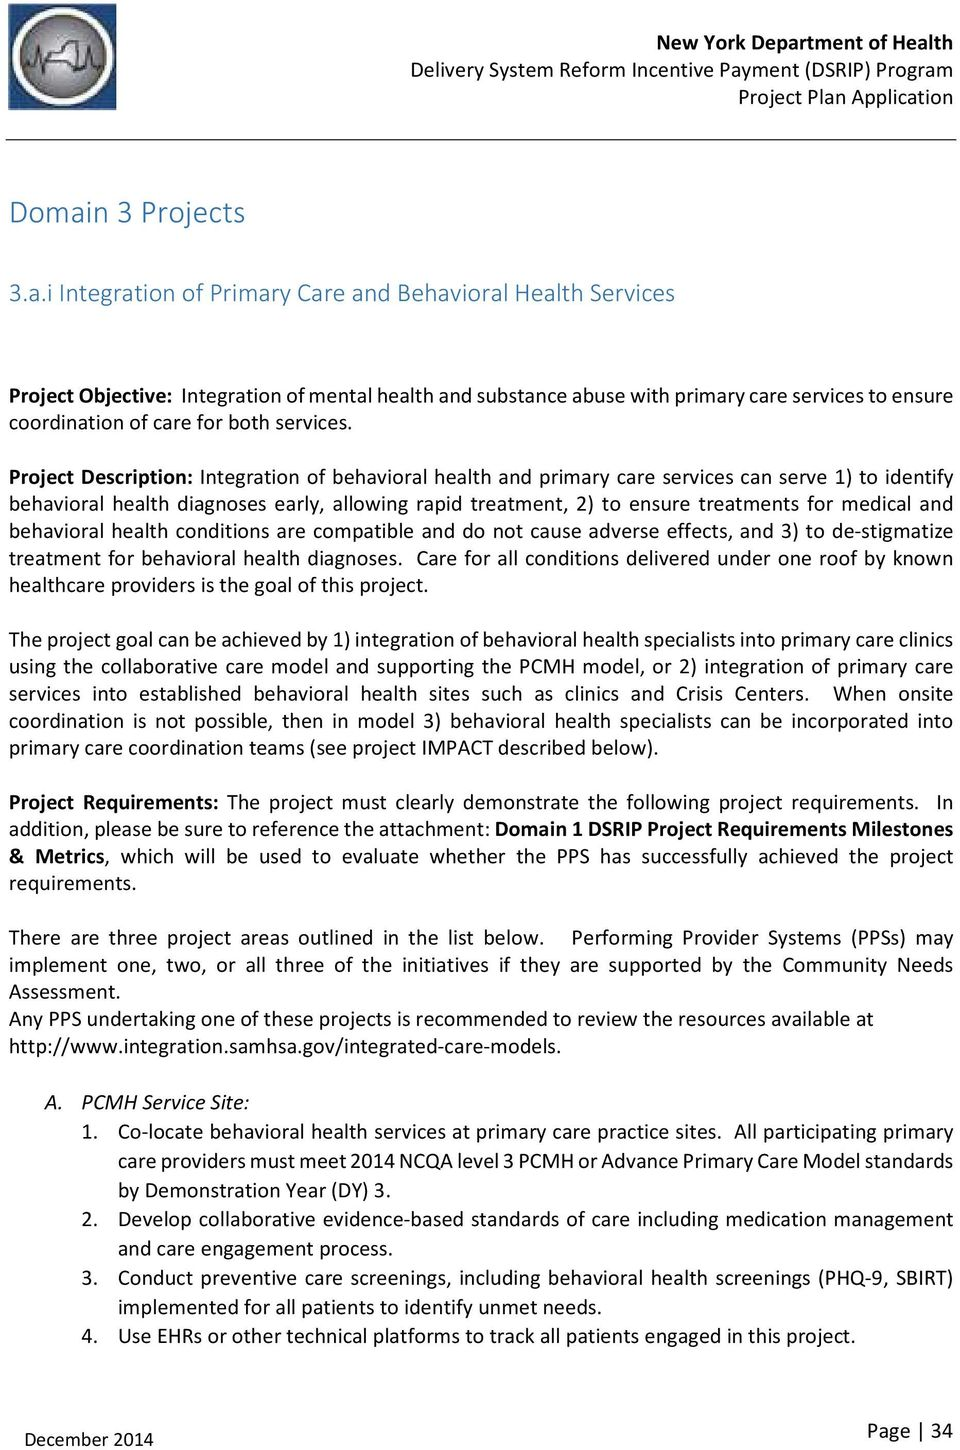 Project Description: Integration of behavioral health and primary care services can serve 1) to identify behavioral health diagnoses early, allowing rapid treatment, 2) to ensure treatments for